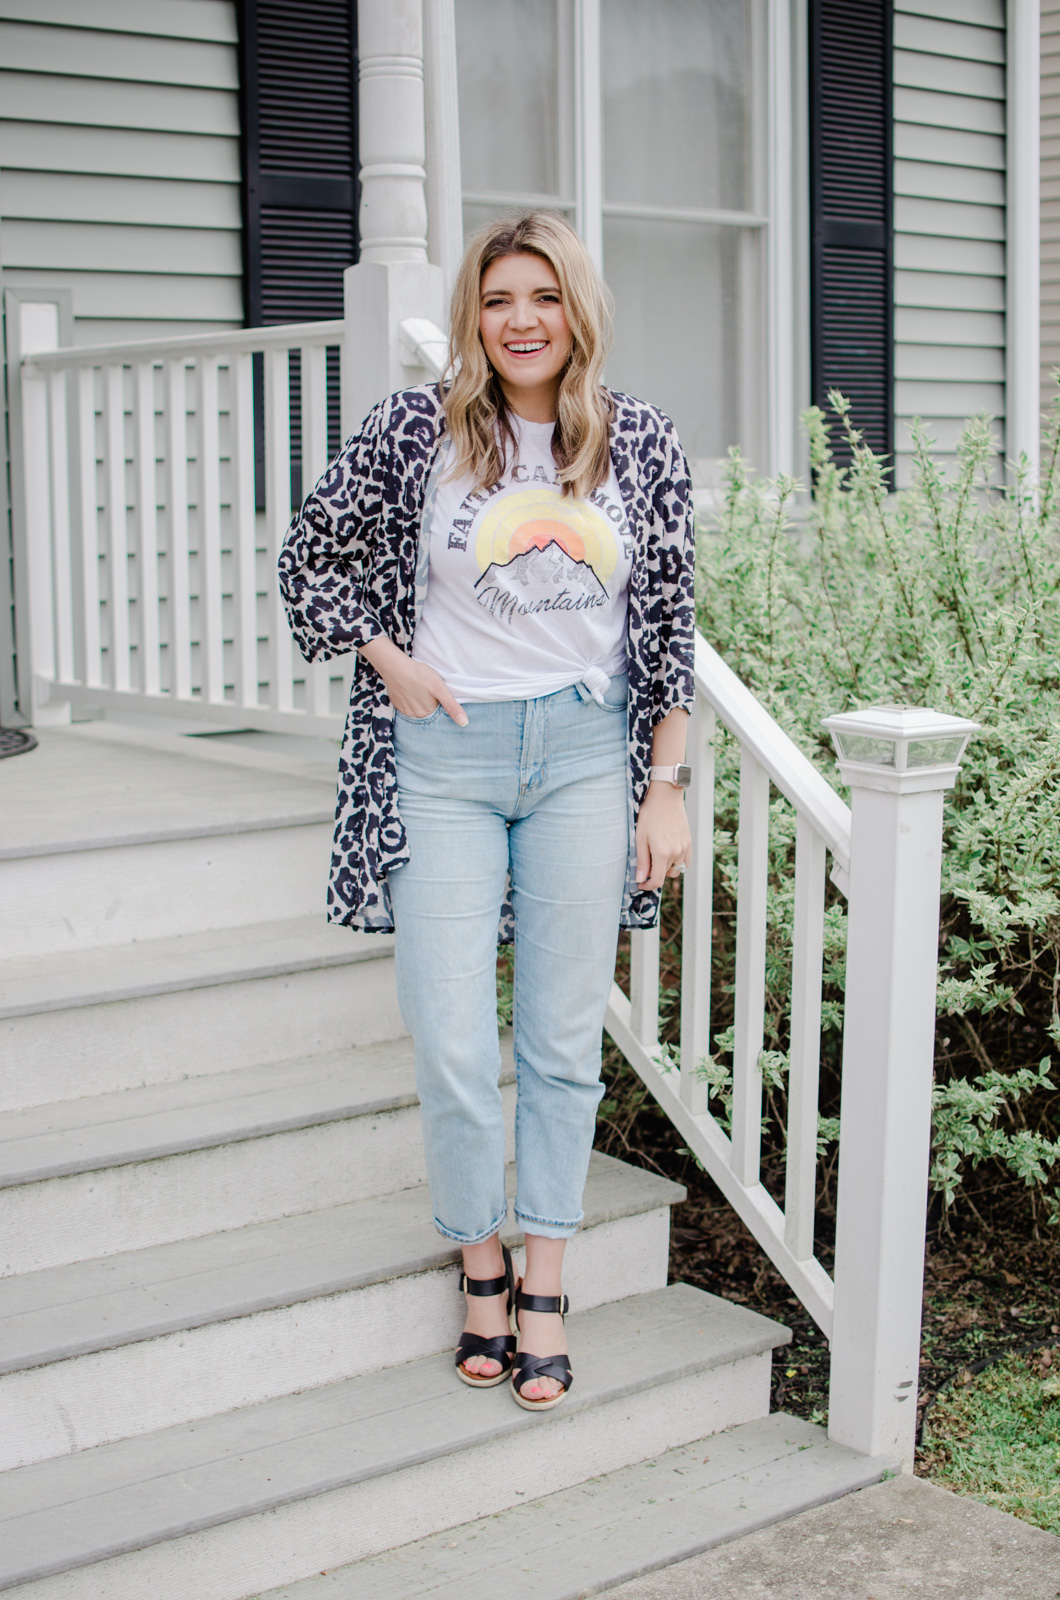 Wondering how to wear a kimono? Virginia style blogger Lauren Dix shares six kimono outfits for spring and summer!